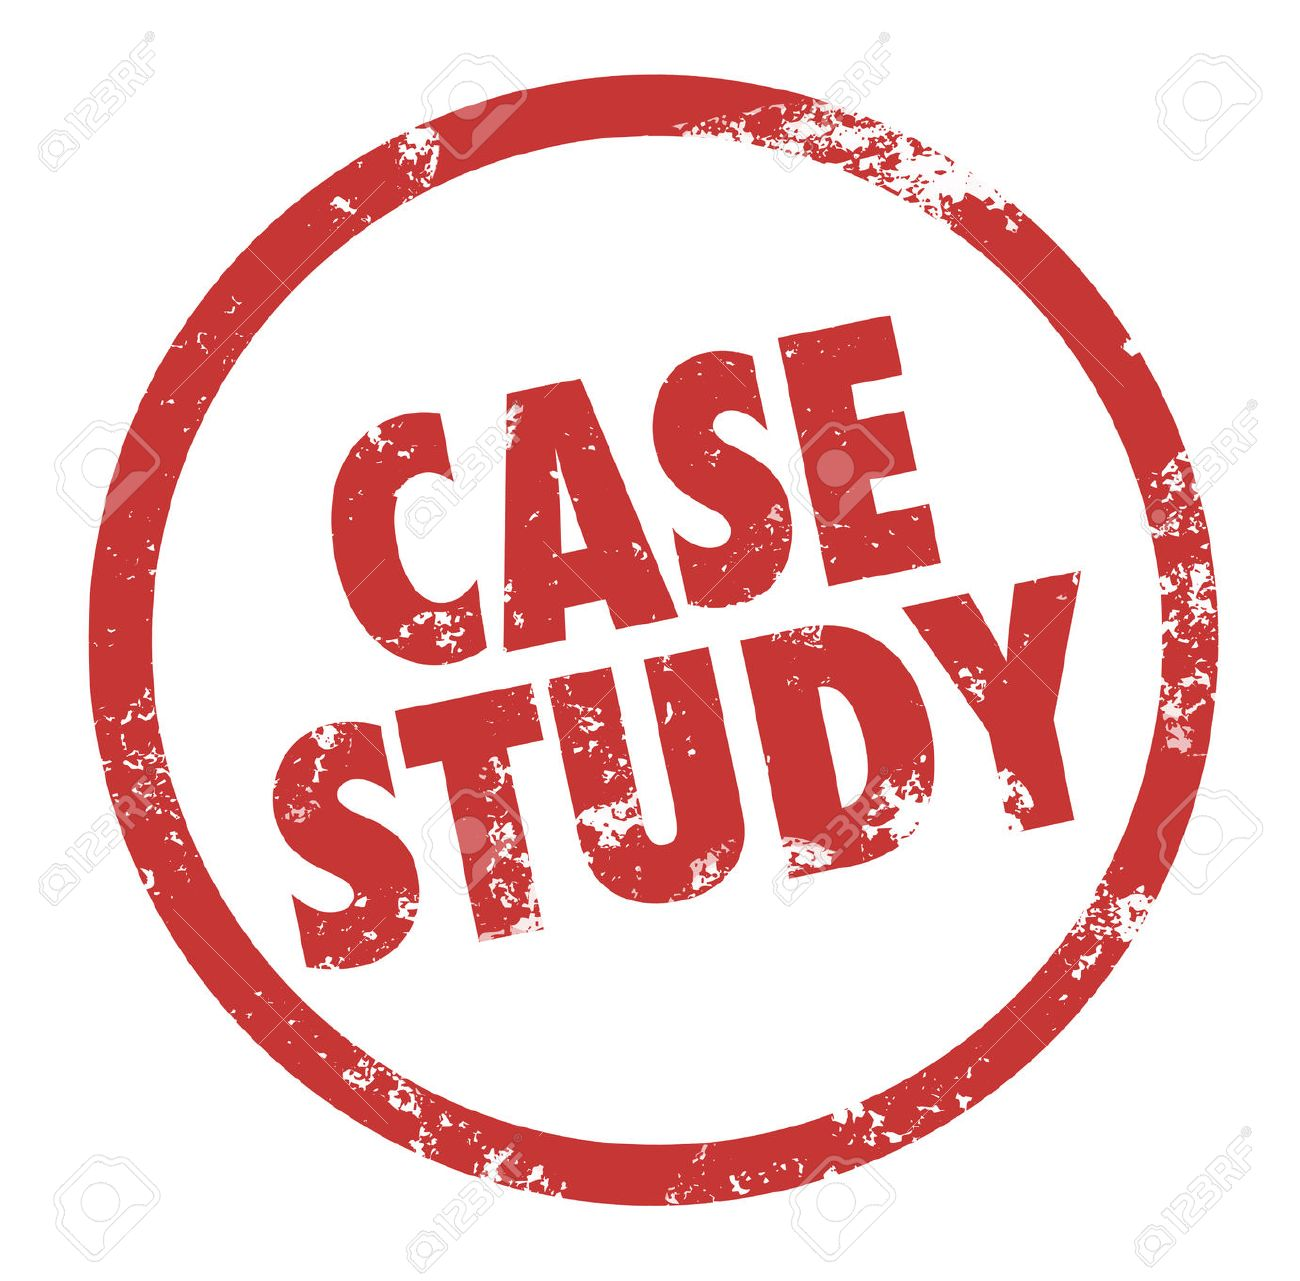 Business study case